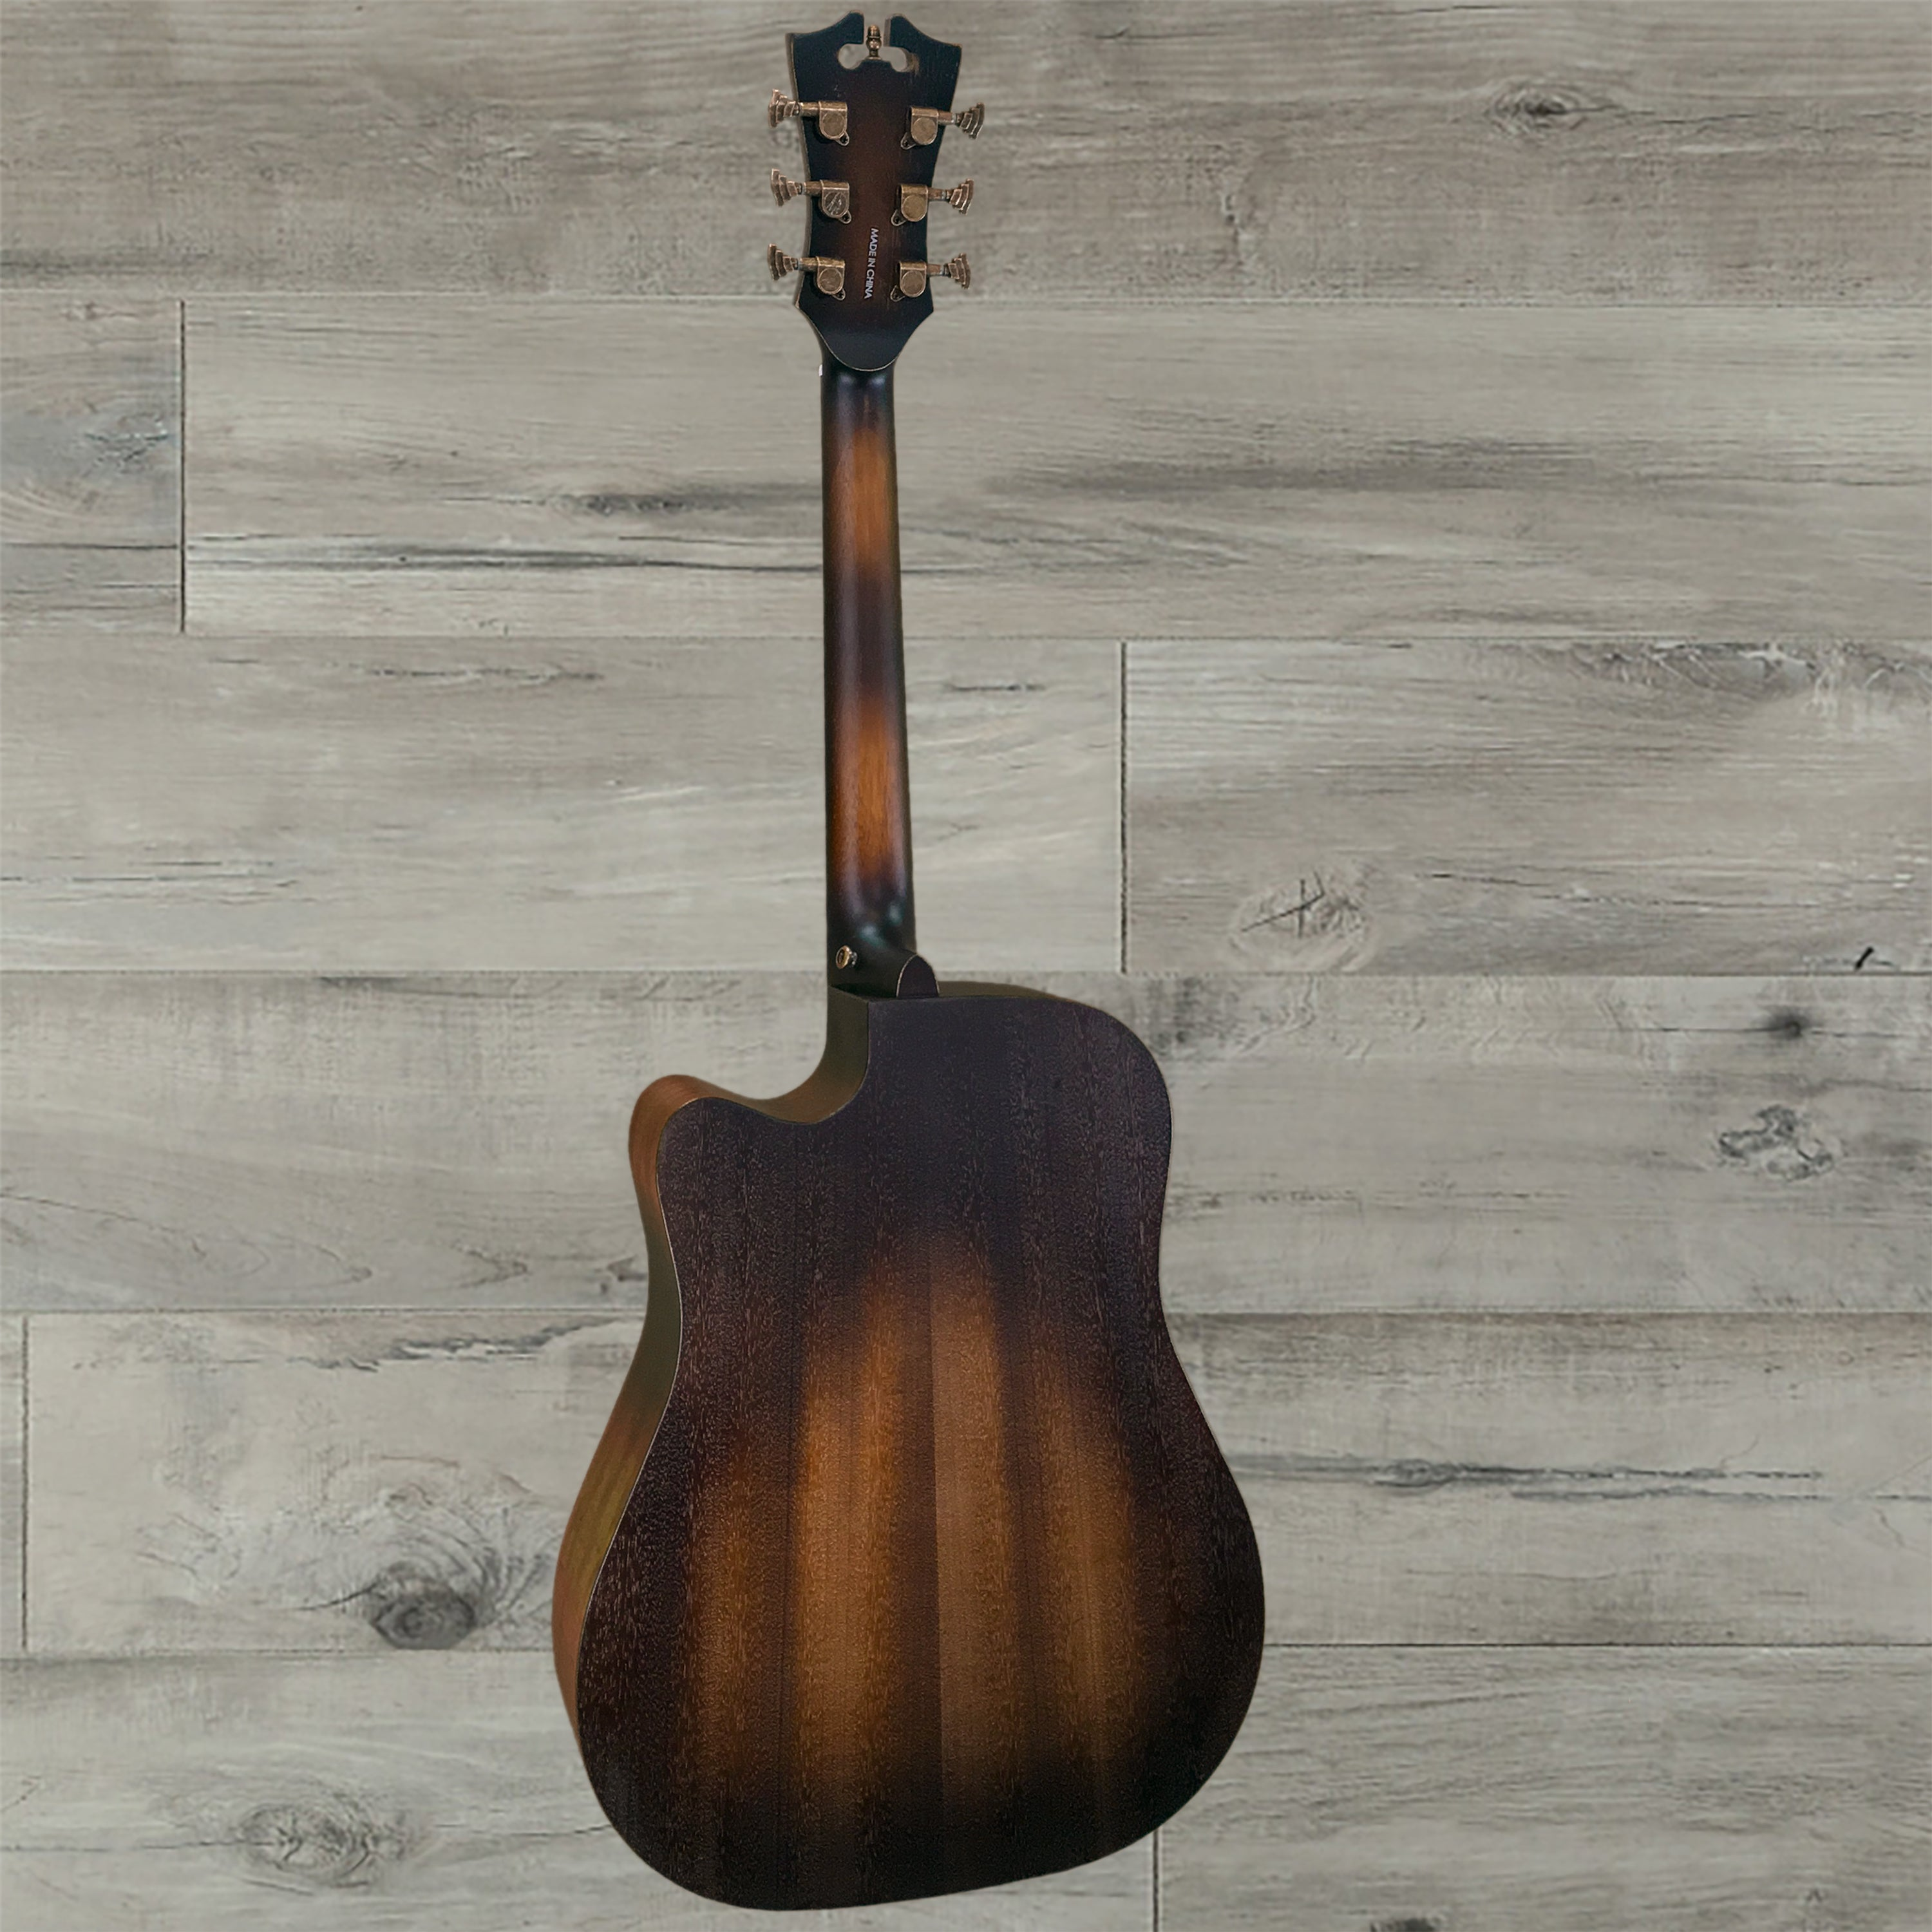 DAngelico Premier Bowery Acoustic Guitar Aged Natural Mahogany